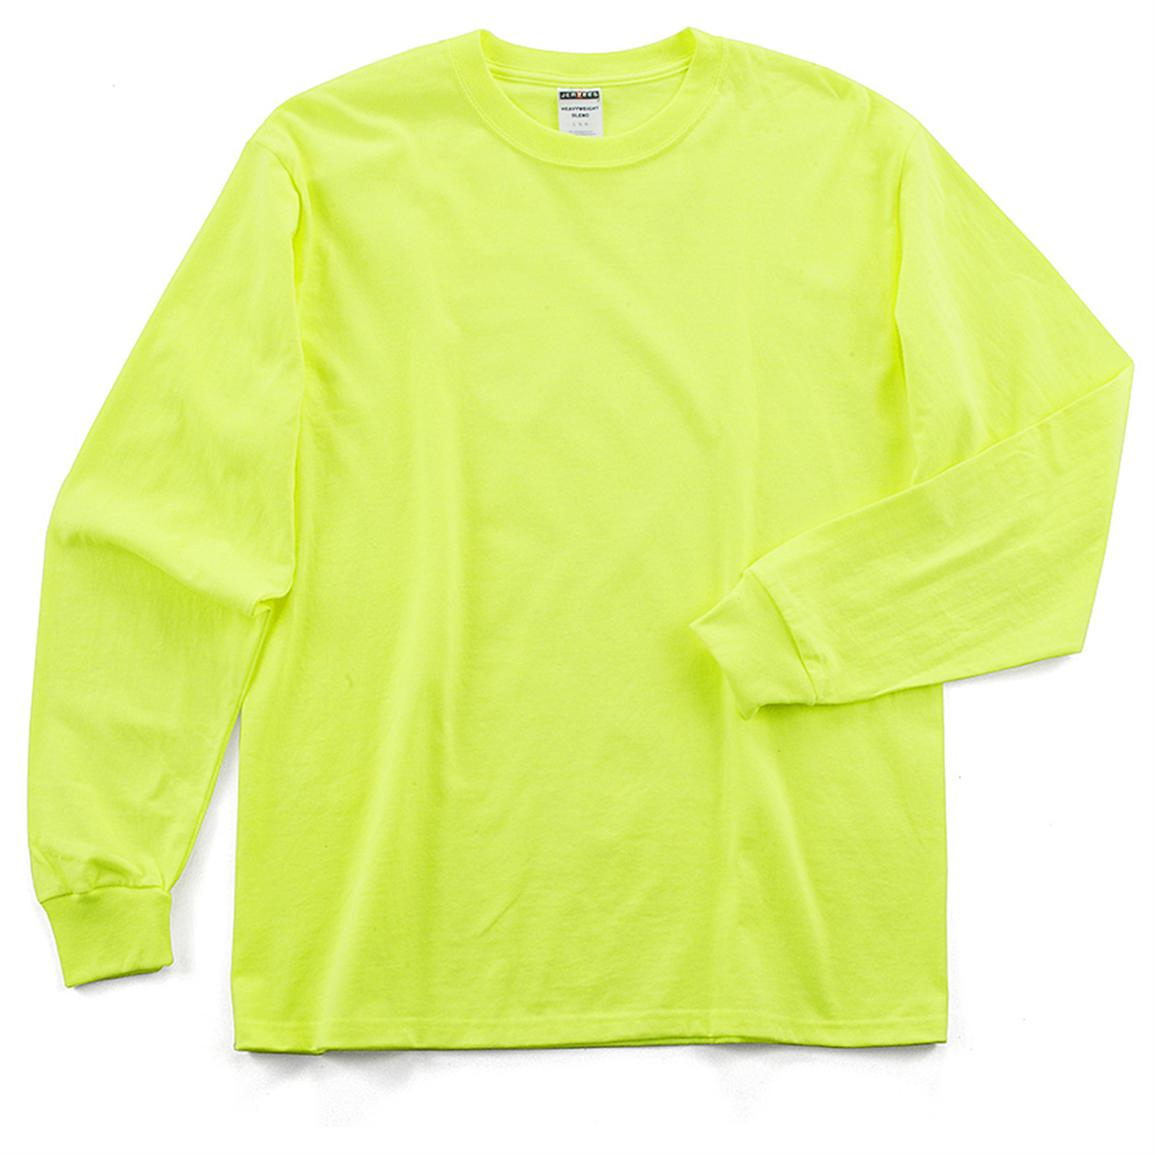 3 Pk Of Jerzees Long Sleeved High Visibility Safety